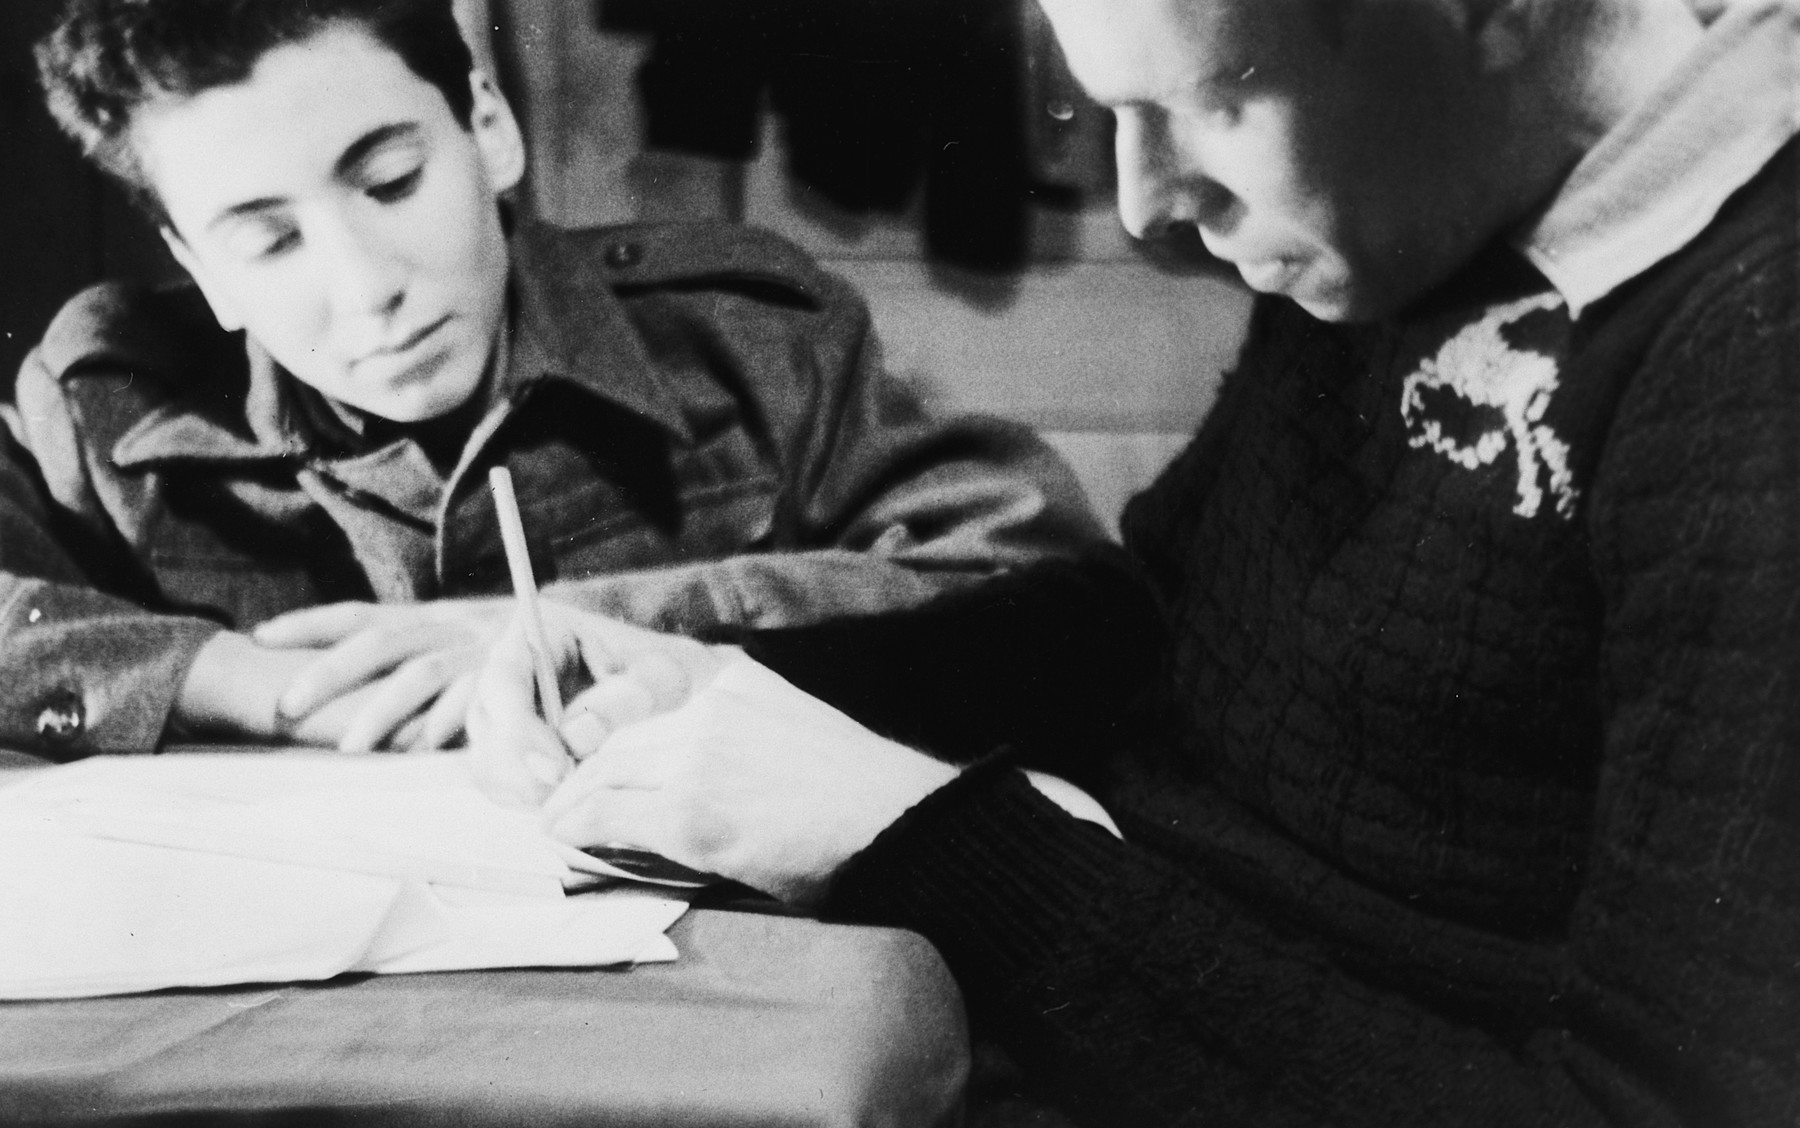 Two teenage boys write in a notebook in a boarding school in Switzerland.  Pictured is Stefan Polgar, a survivor from Hungary and the donor's roommate.